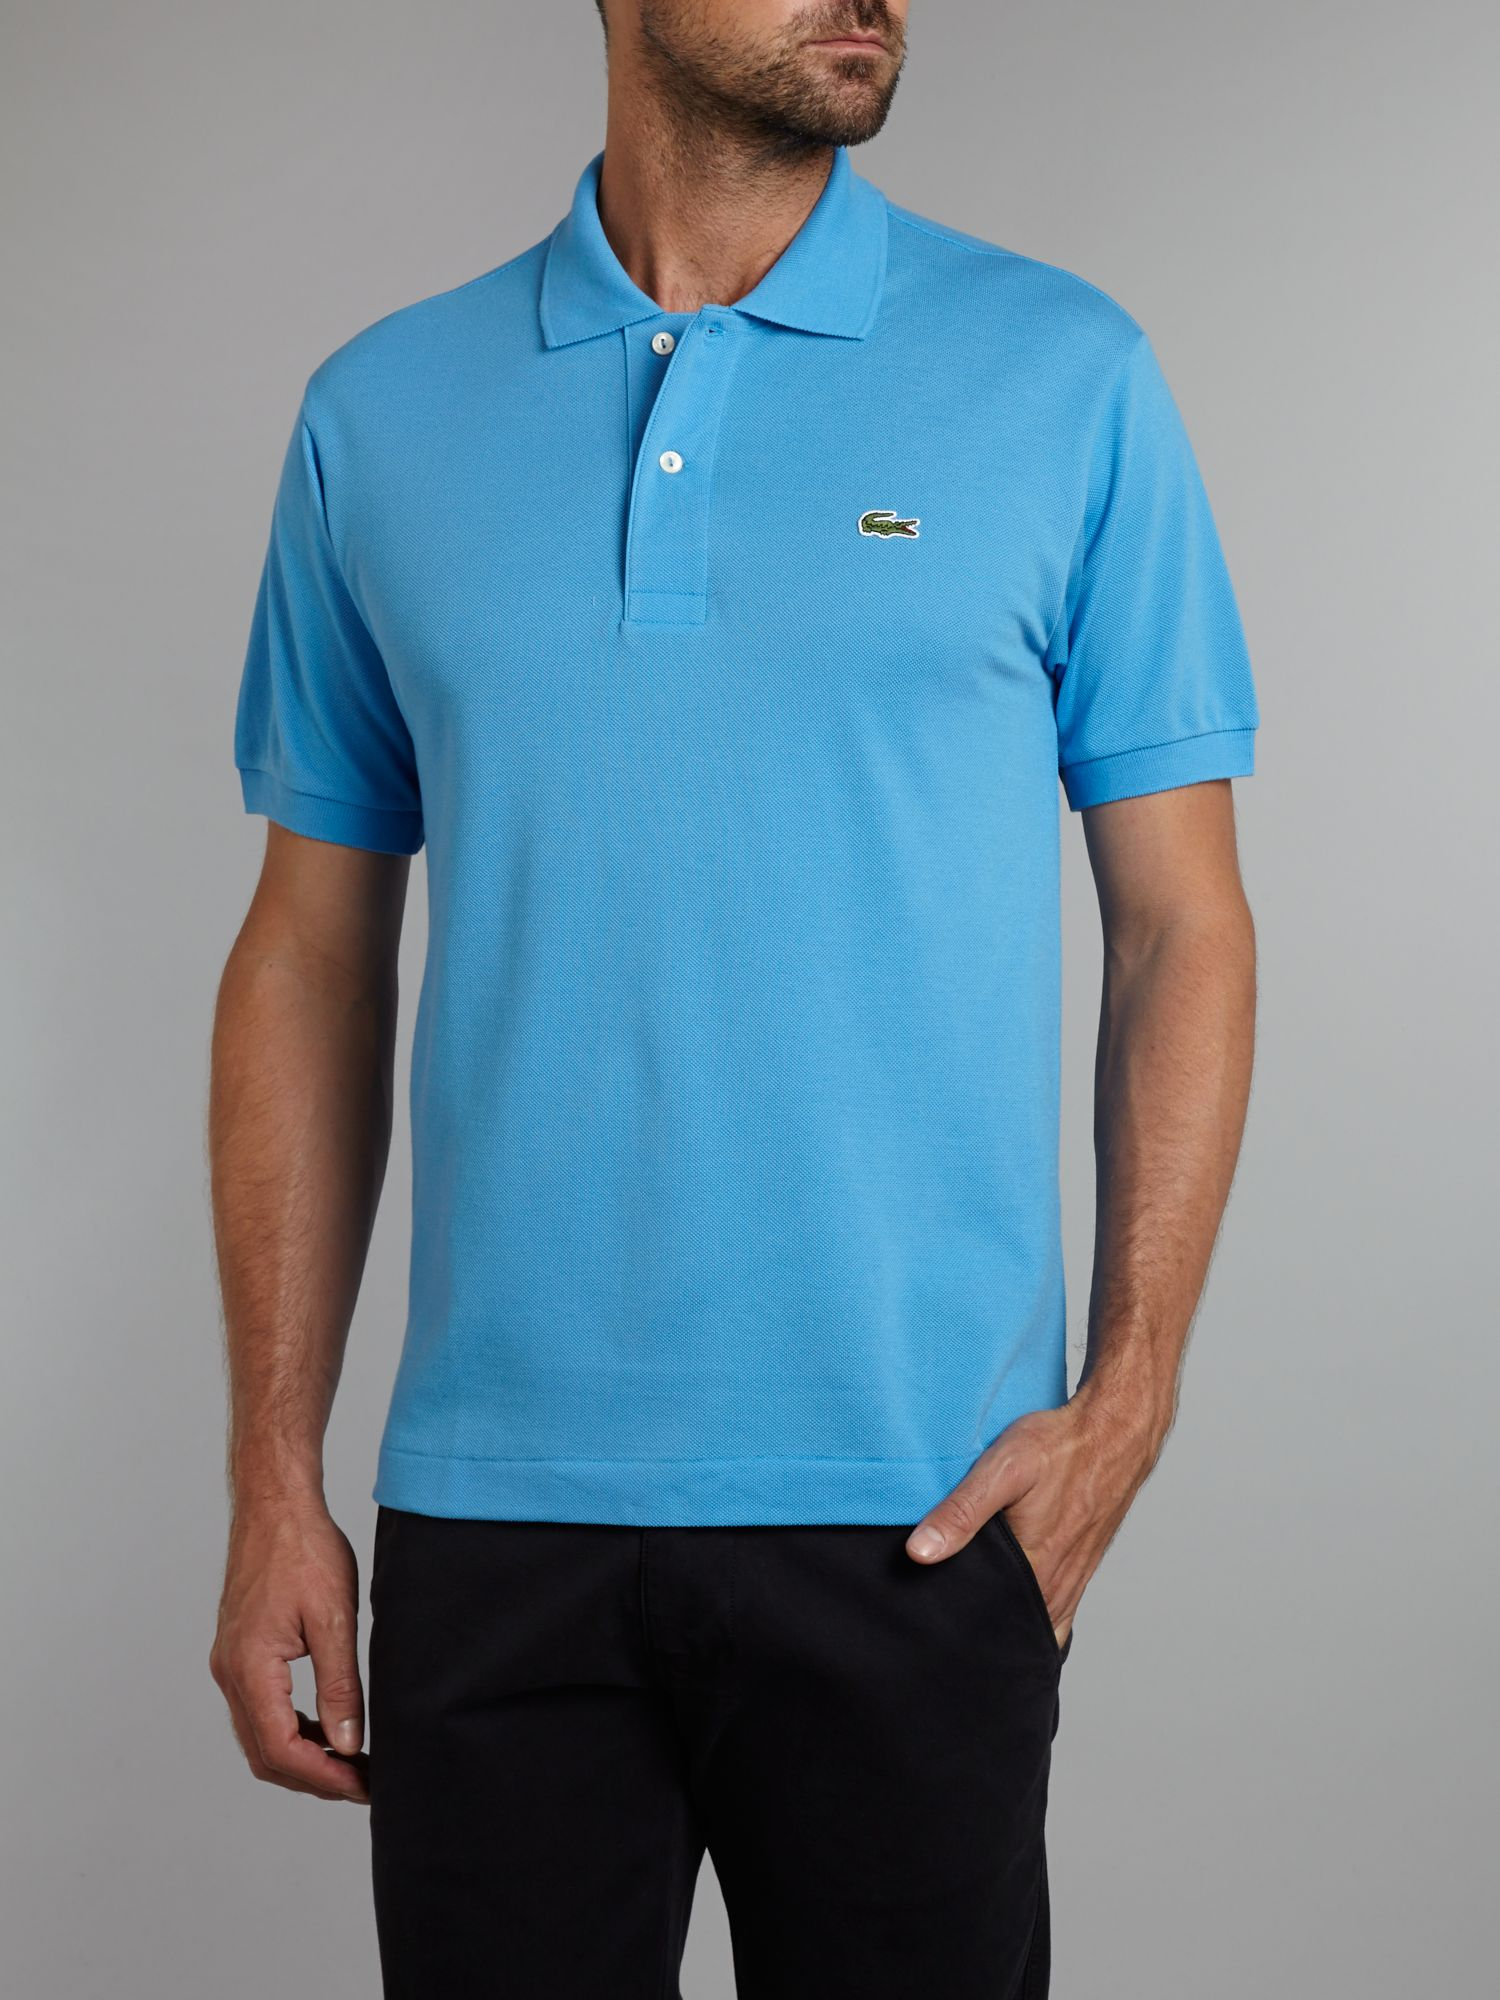 Lacoste classic polo shirt in blue for men lyst for Boys lacoste polo shirt